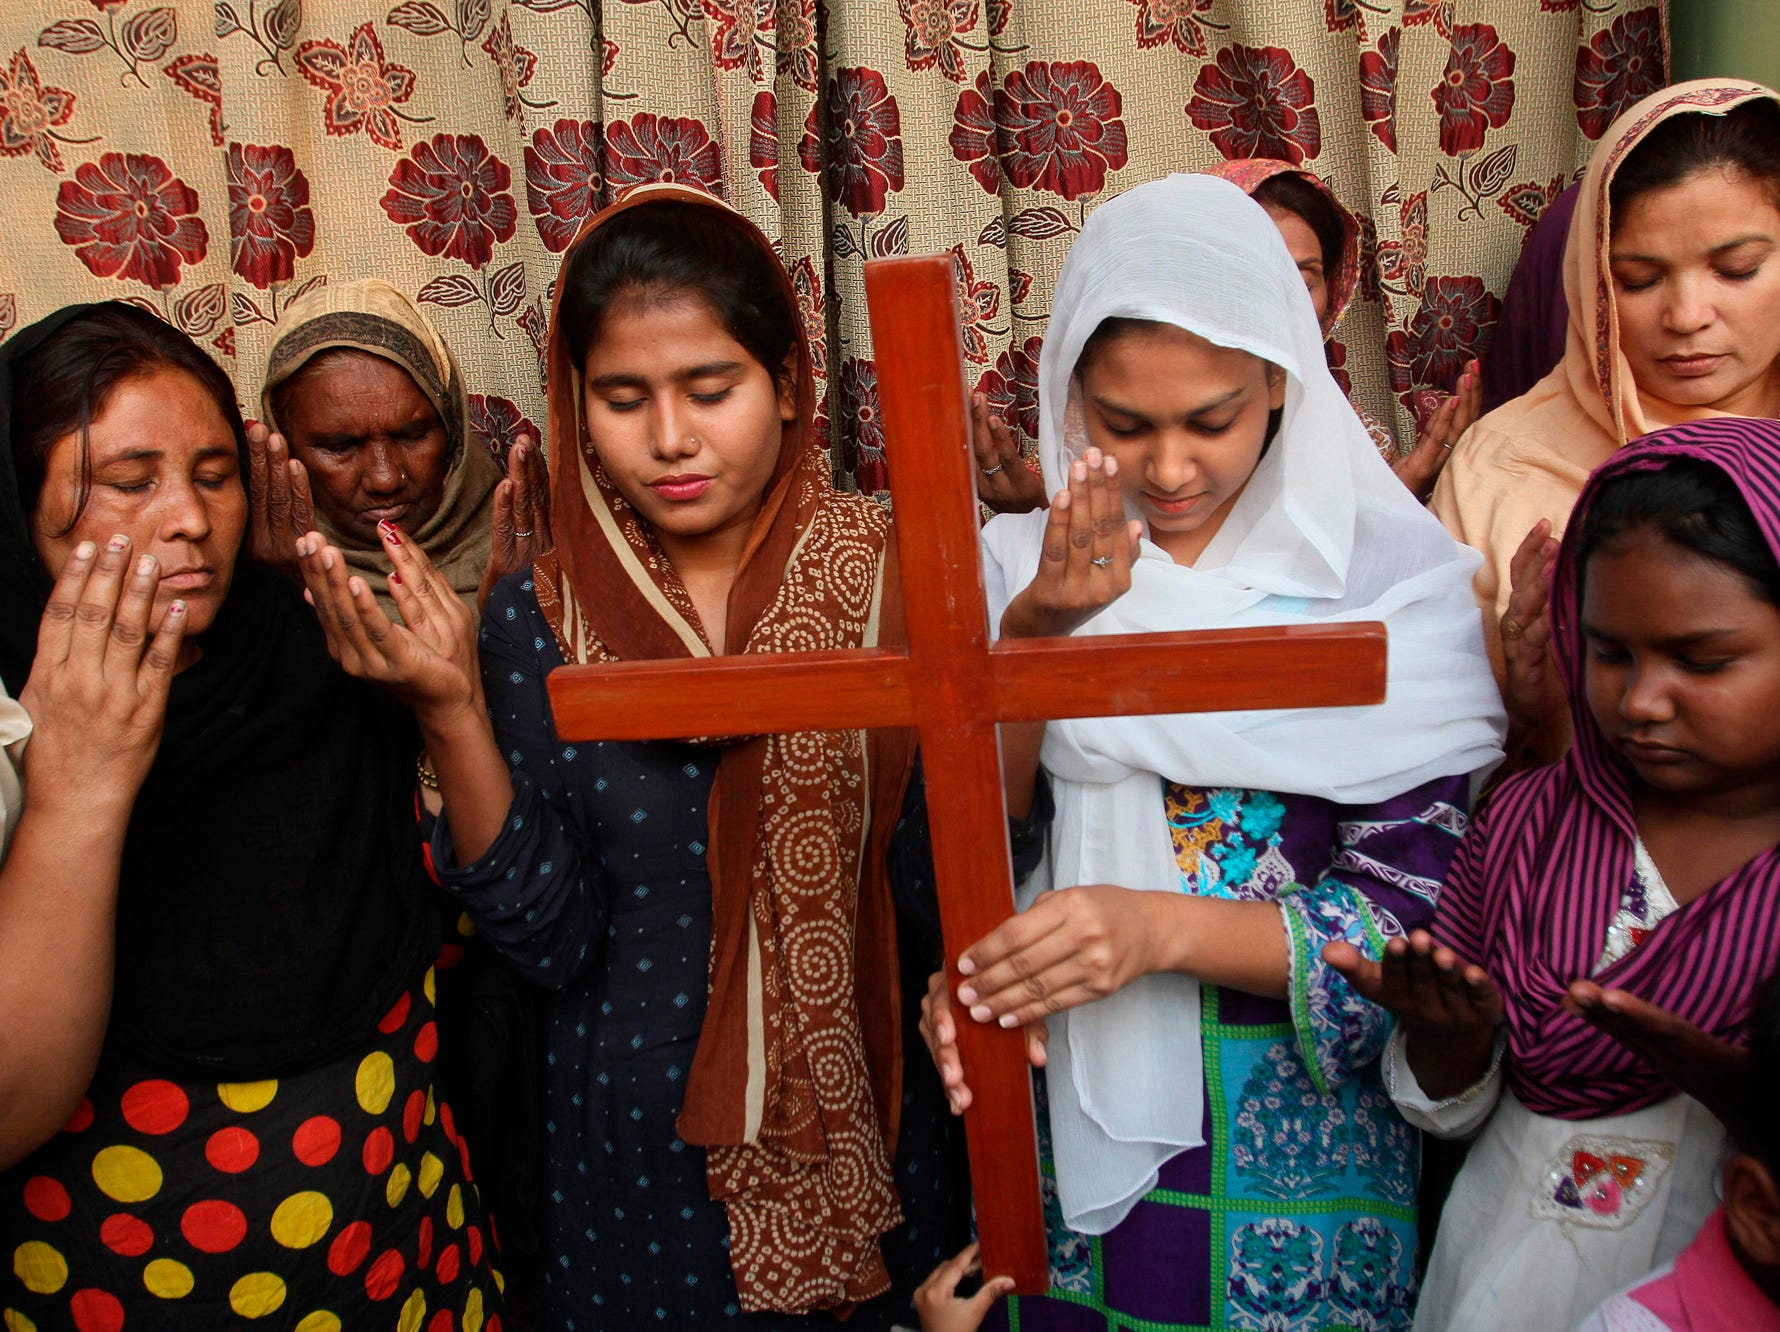 Pakistan Christians pray for Asia Bibi, a Catholic mother of five who has been on death row since 2010 accused of blasphemy in Multan, Pakistan. Wednesday, Oct. 31, 2018. Pakistan's top court on Wednesday acquitted Bibi who was sentenced to death under the country's controversial blasphemy law, a landmark ruling that sparked protests by hard-line Islamists and raised fears of violence. (AP Photo/Irum Asim)